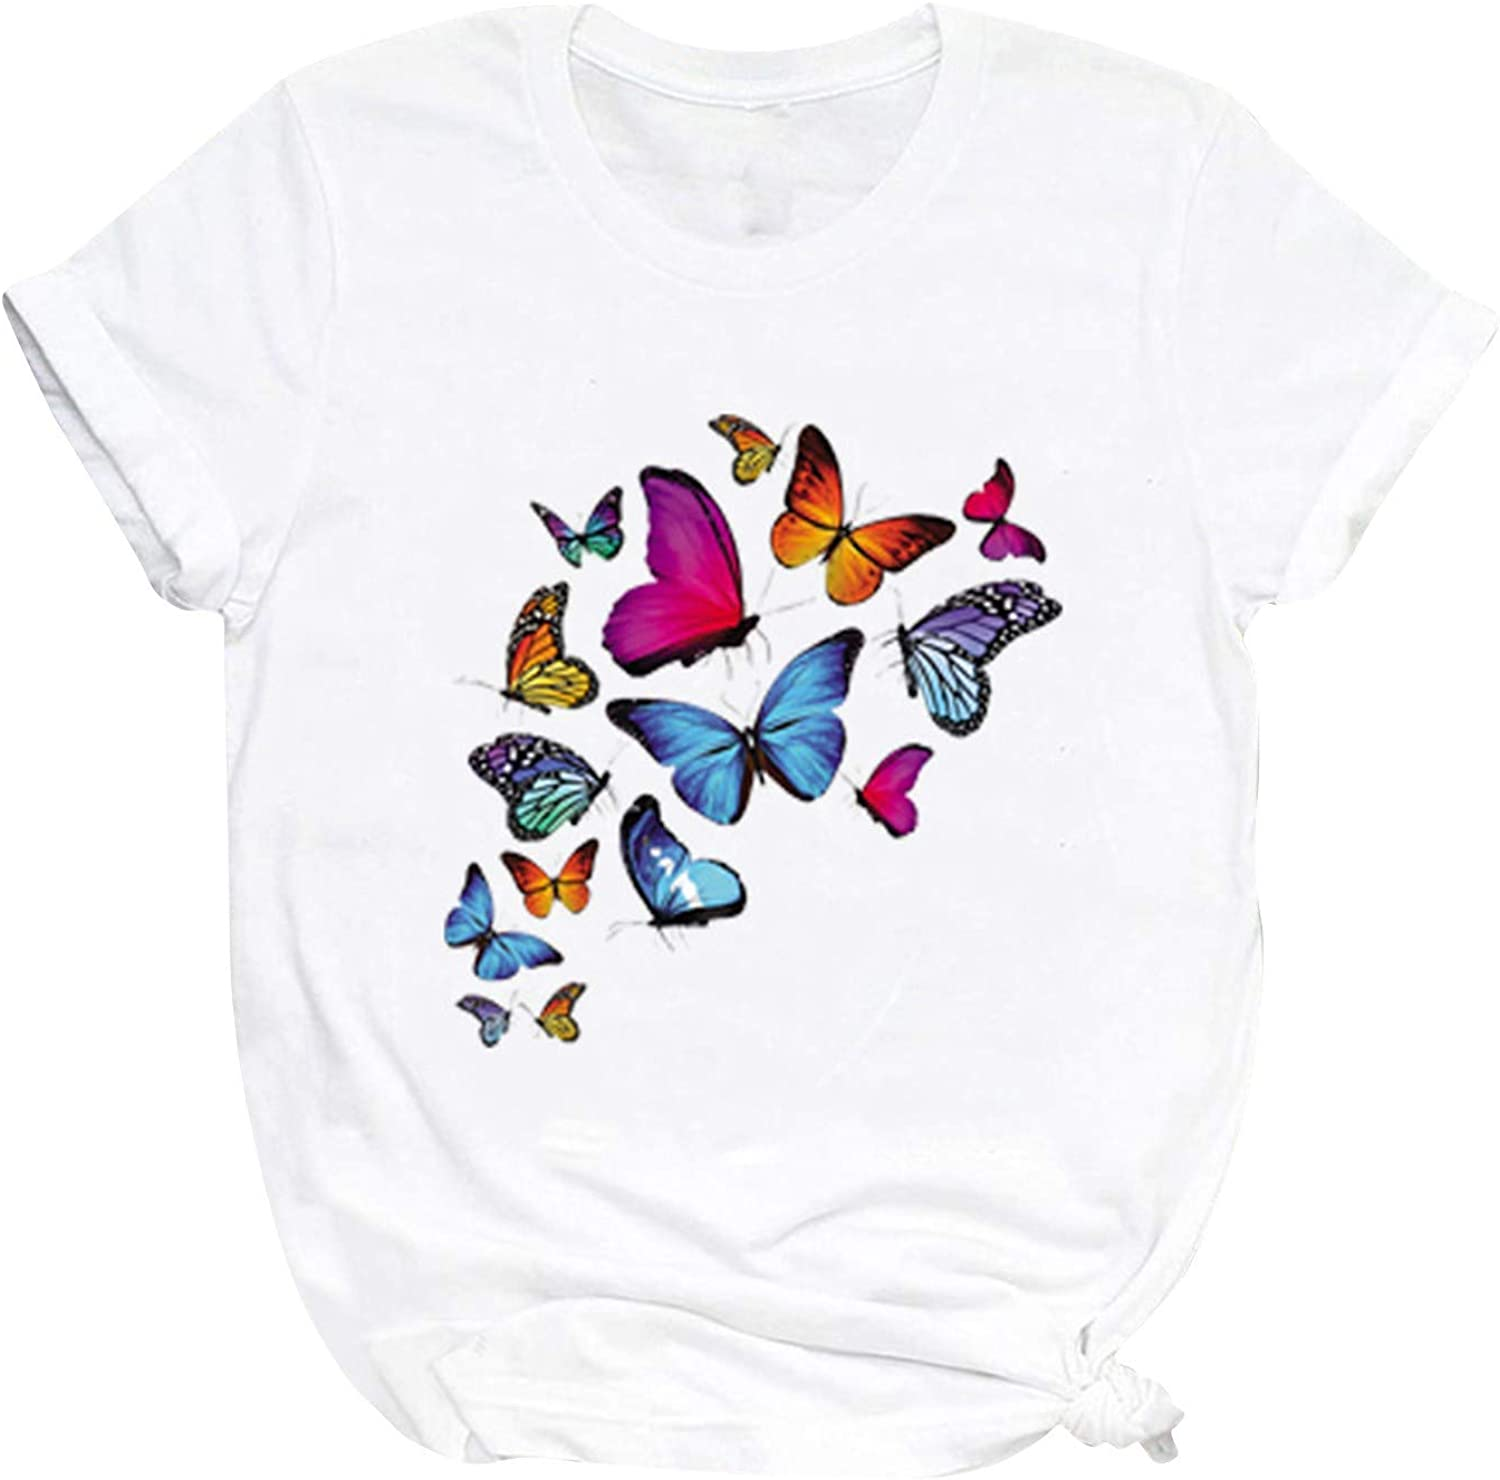 Womens Short Sleeve Tops, naioewe Butterfly Print Shirts for Women O-Neck T Shirt Short Sleeve Blouses Tops Graphic Tees